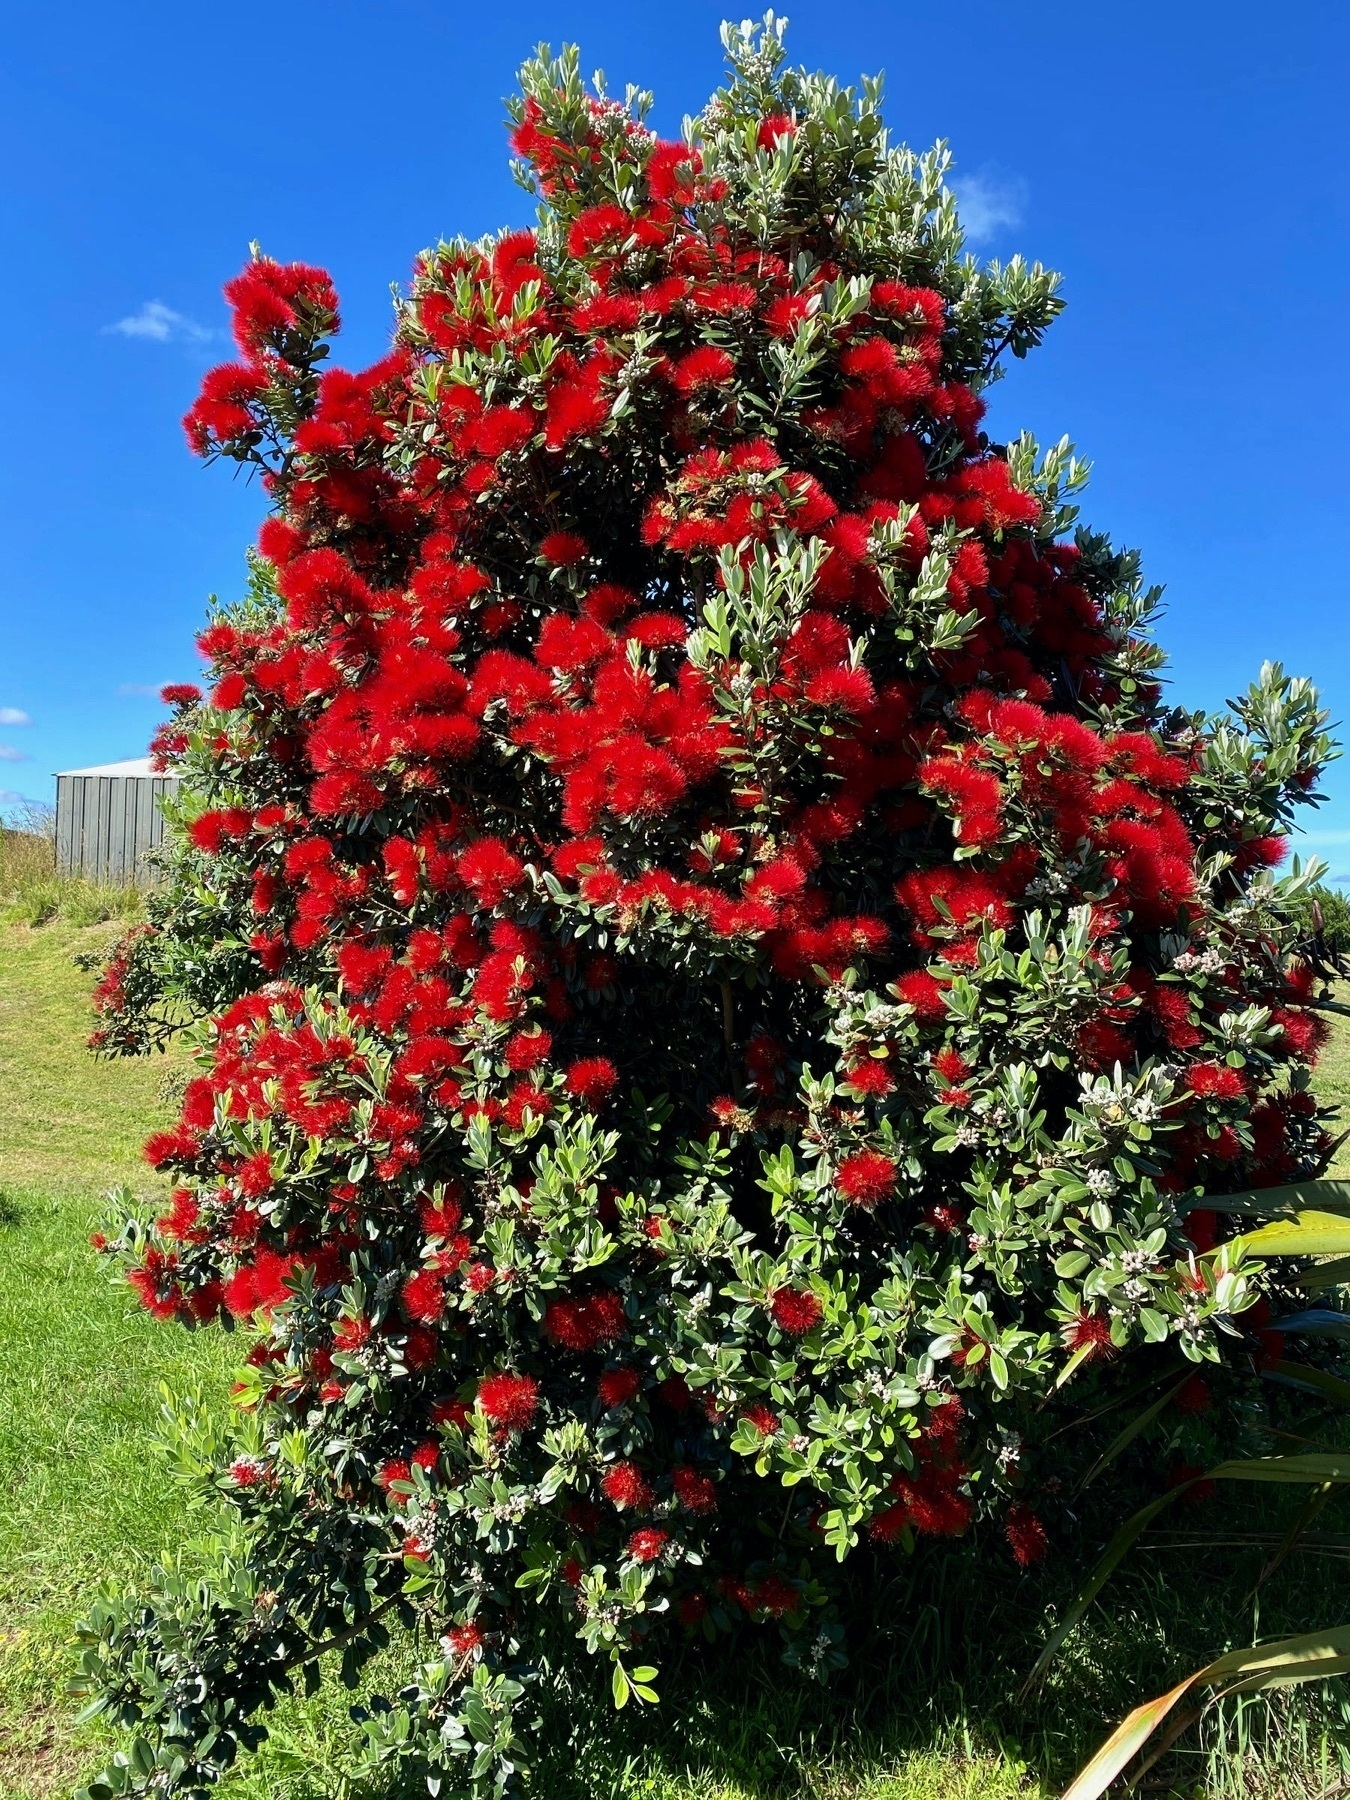 Shrubby tree with bright red flowers.